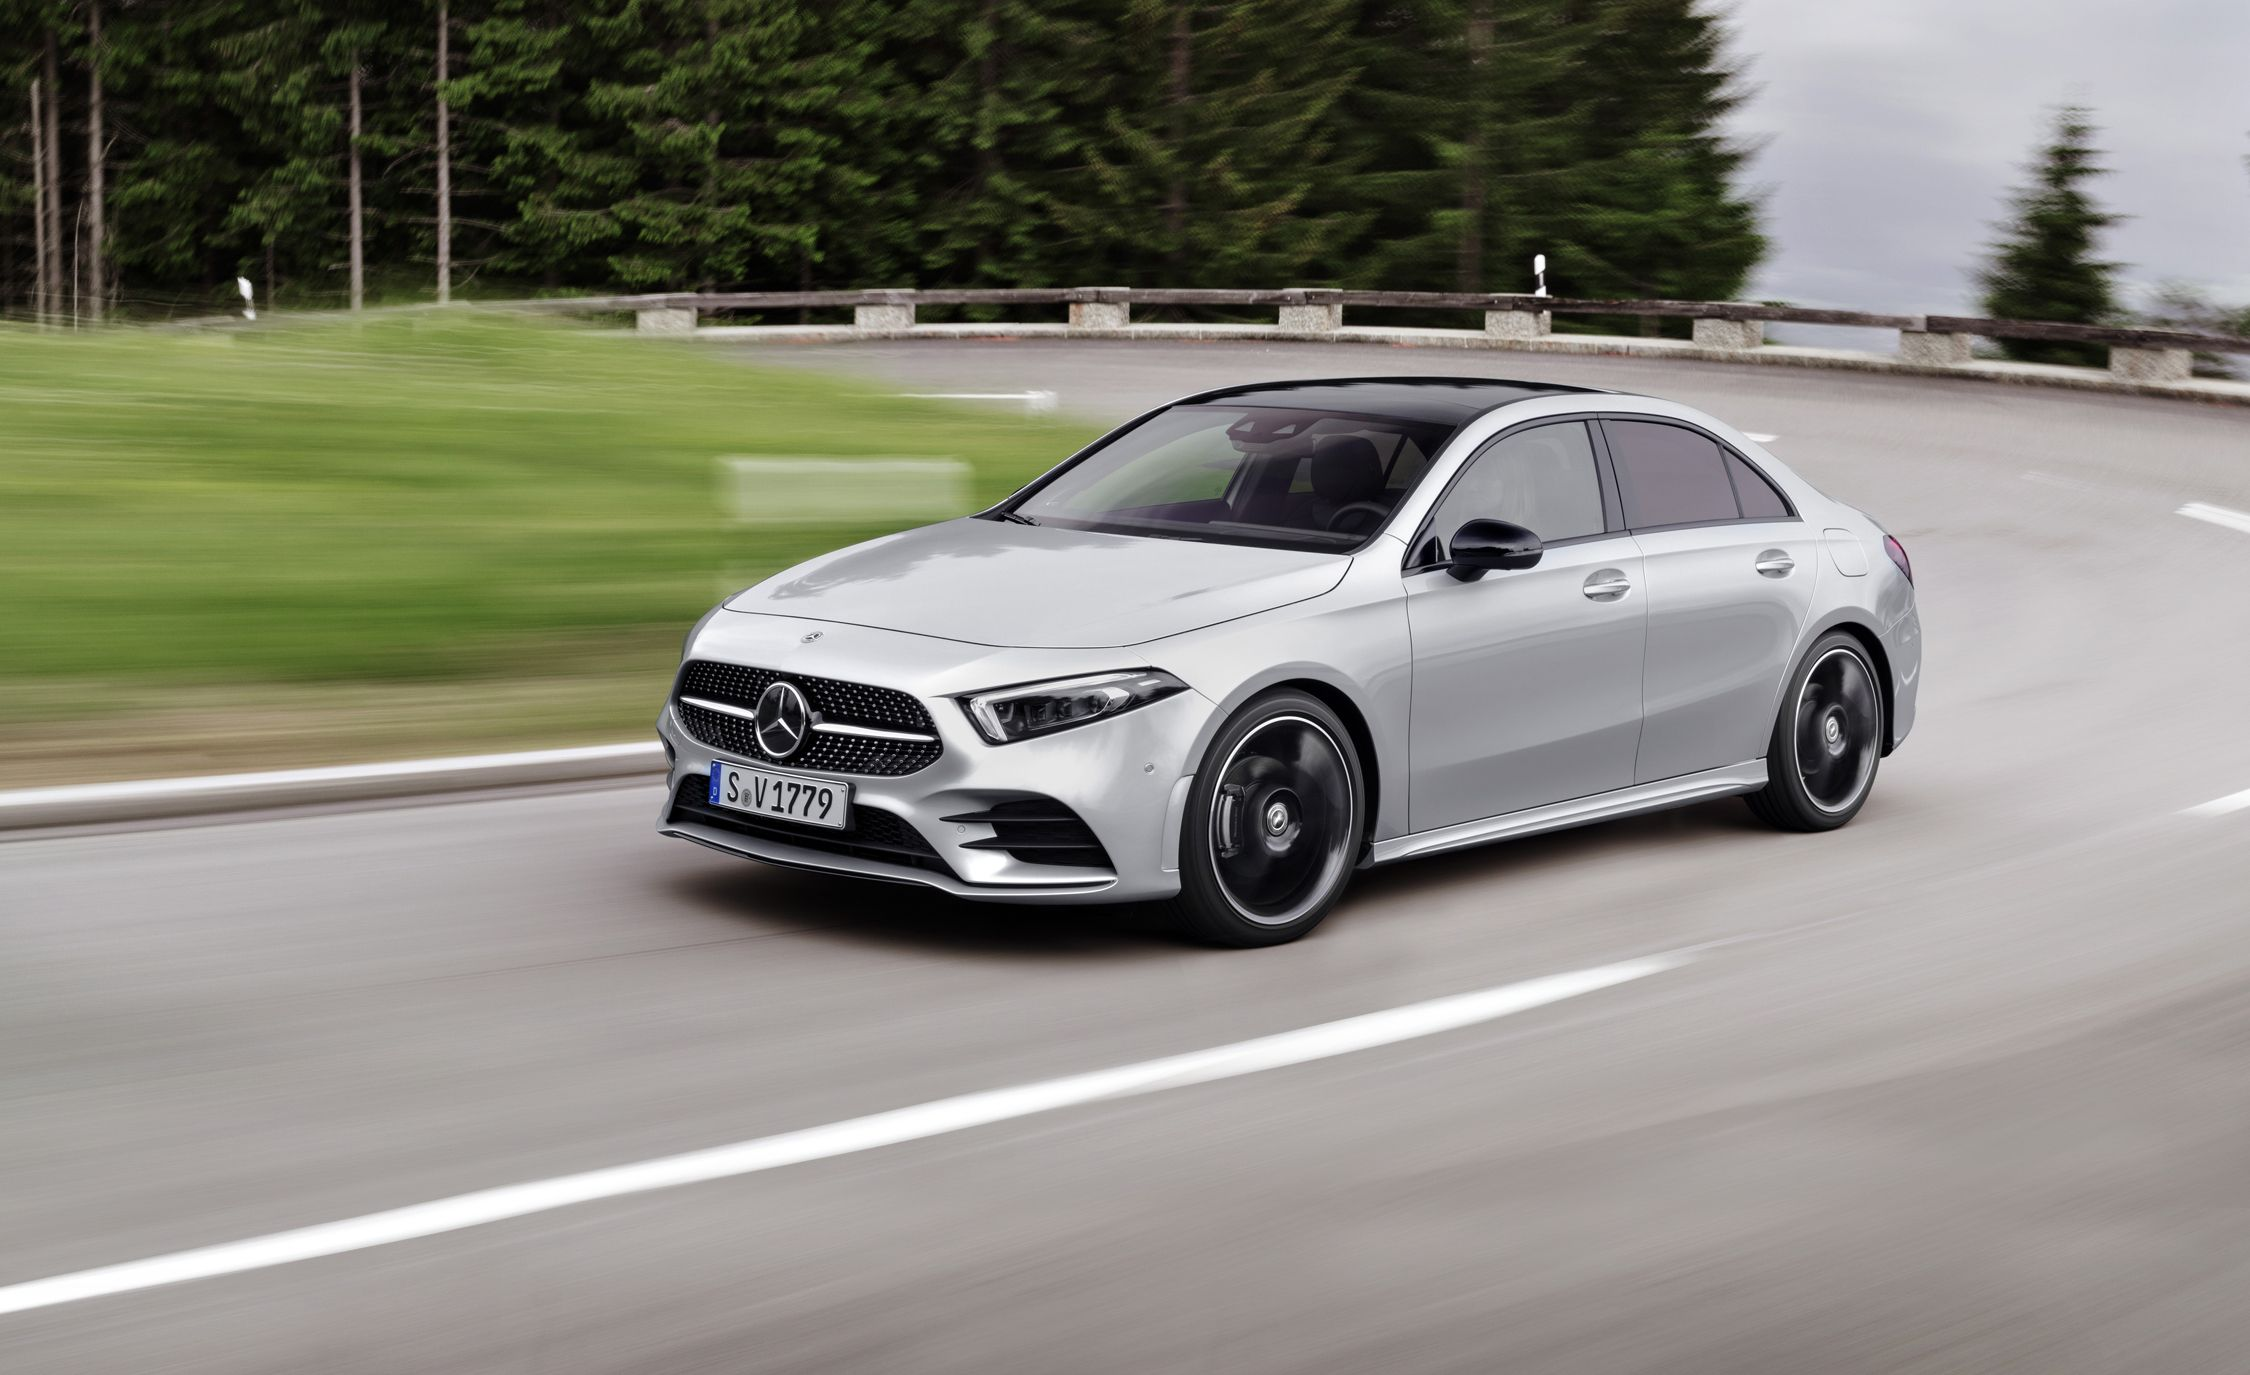 2019 Mercedes Benz A Class Sedan: The First Of A New Generation Of